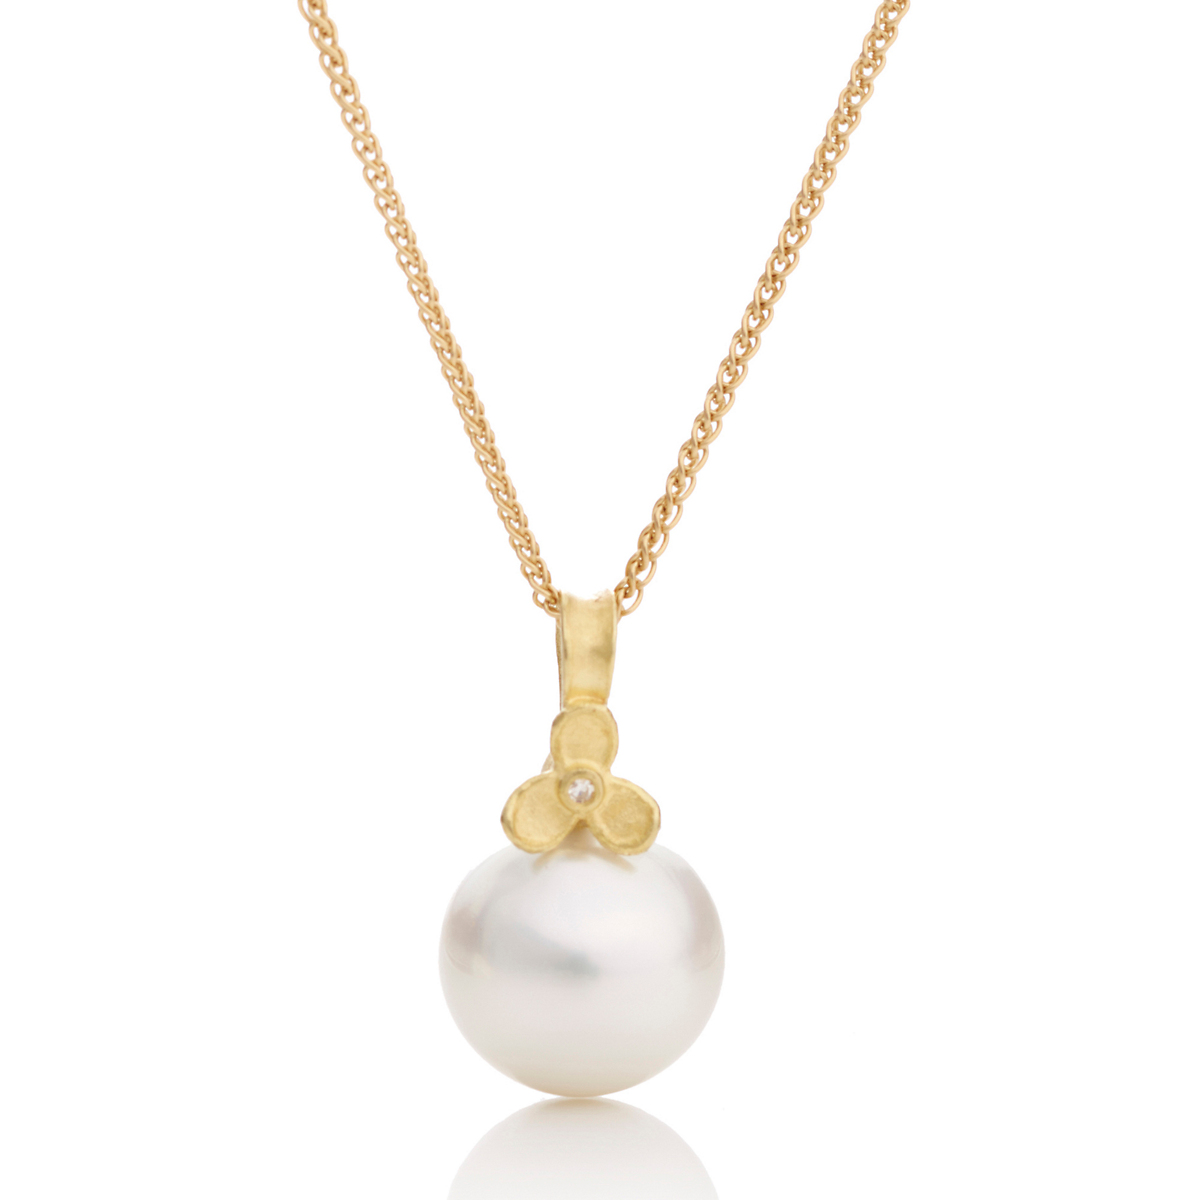 Barbara Heinrich Trillium Flower South Sea Pearl Pendant Necklace